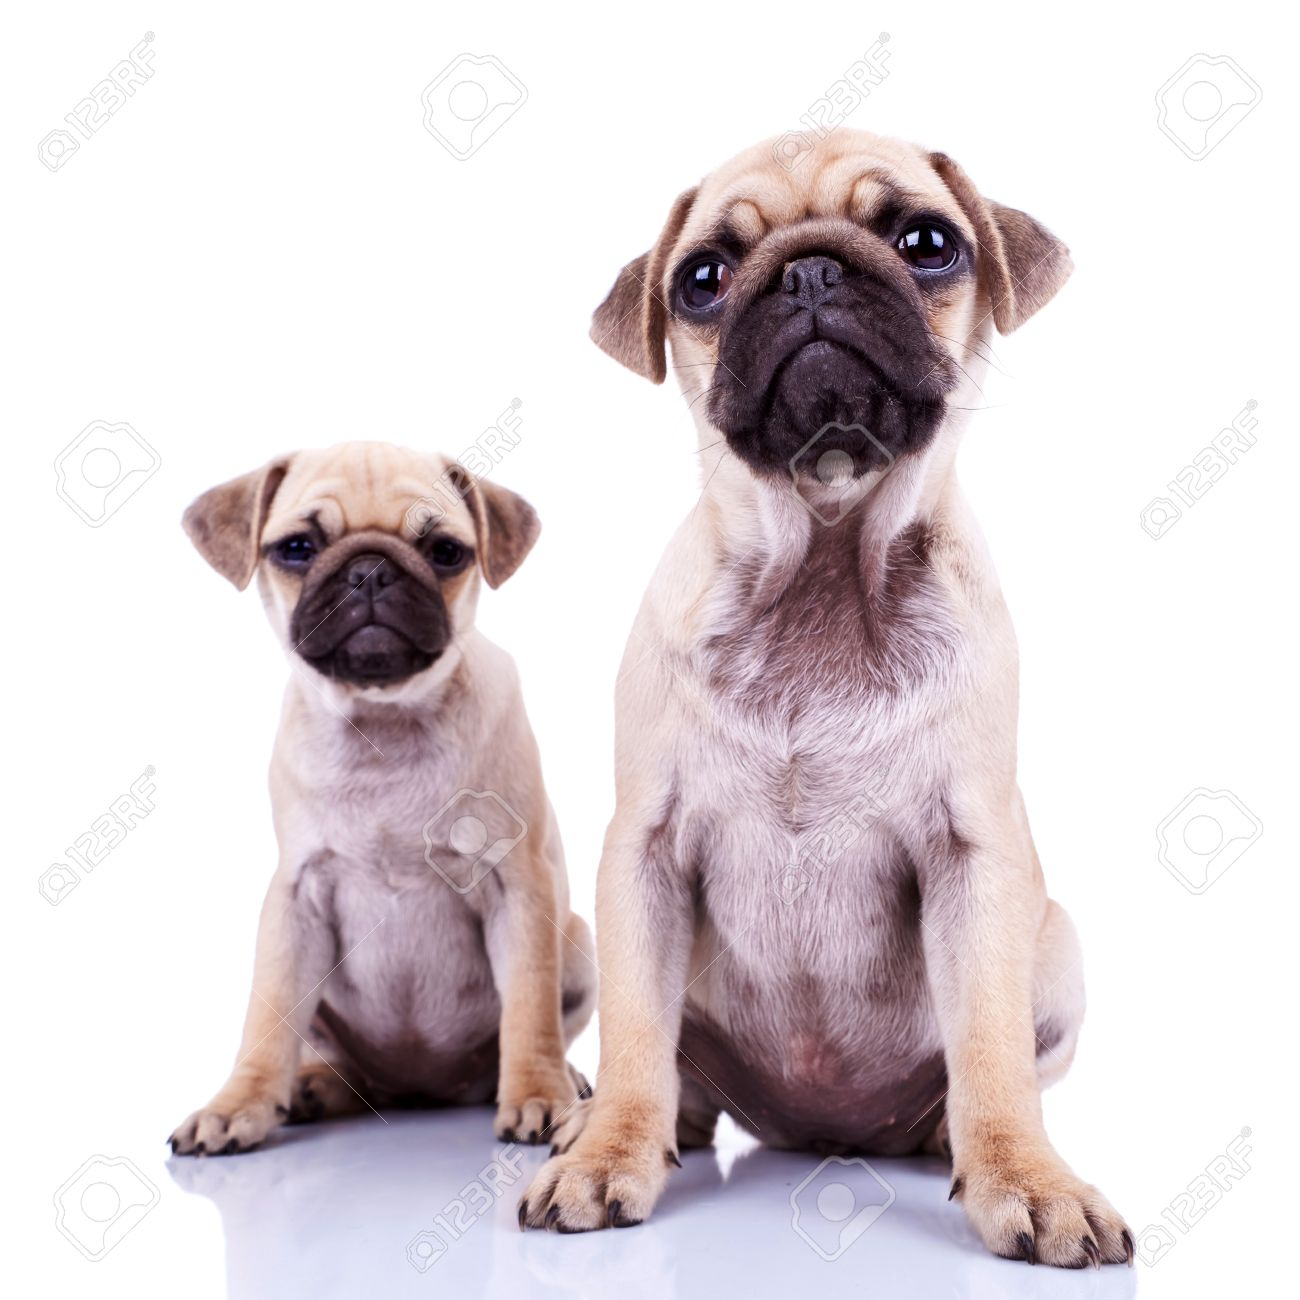 Best Pug Bow Adorable Dog - 12581660-pair-of-pug-puppy-dogs-sitting-on-white-background-cute-and-curious-couple-of-mops-puppies-looking-a  You Should Have_12320  .jpg